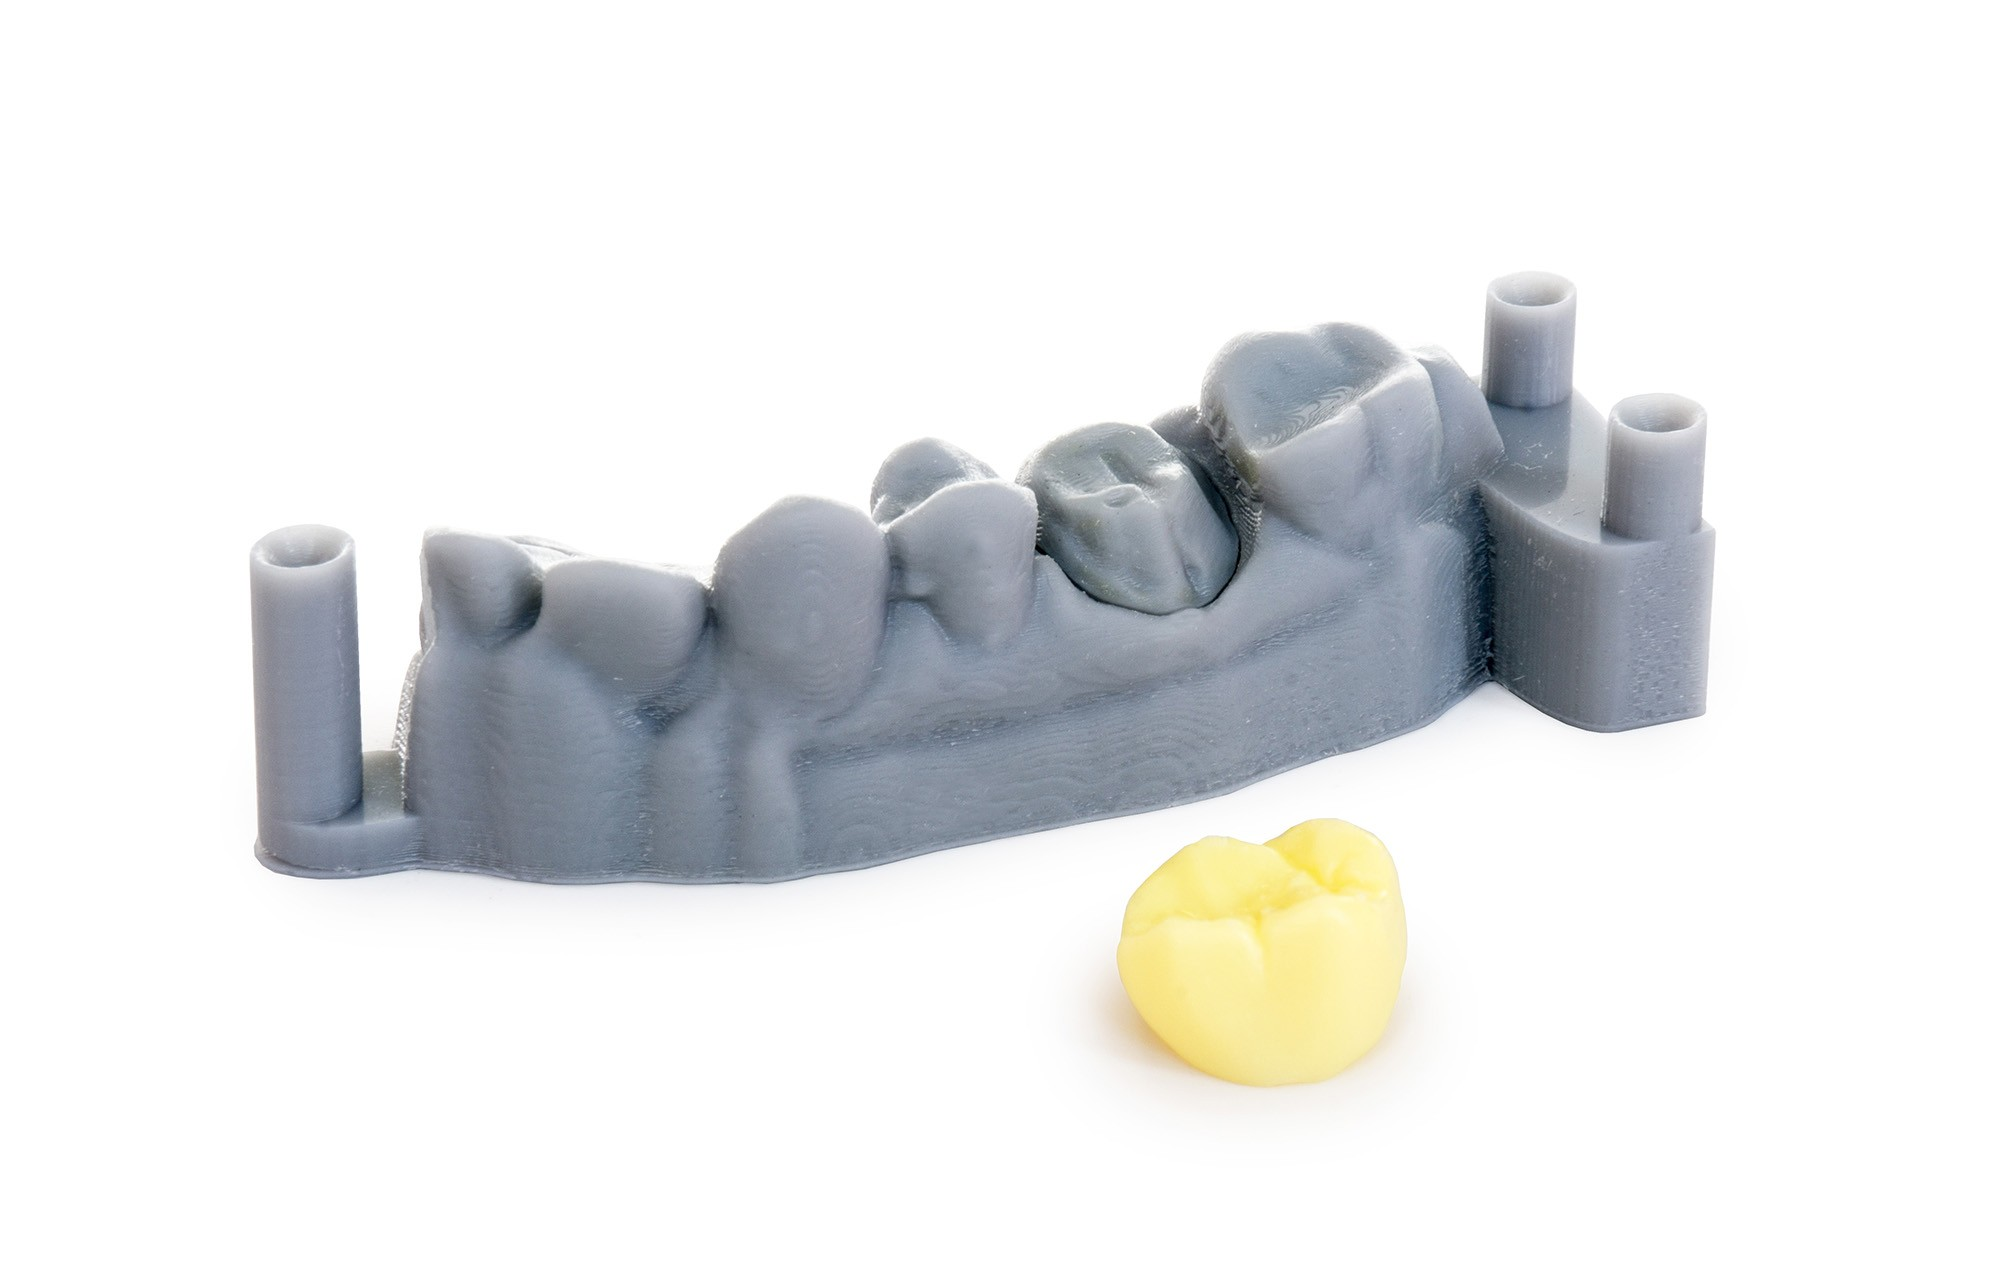 Dental applications for the MoonRay 3D printer